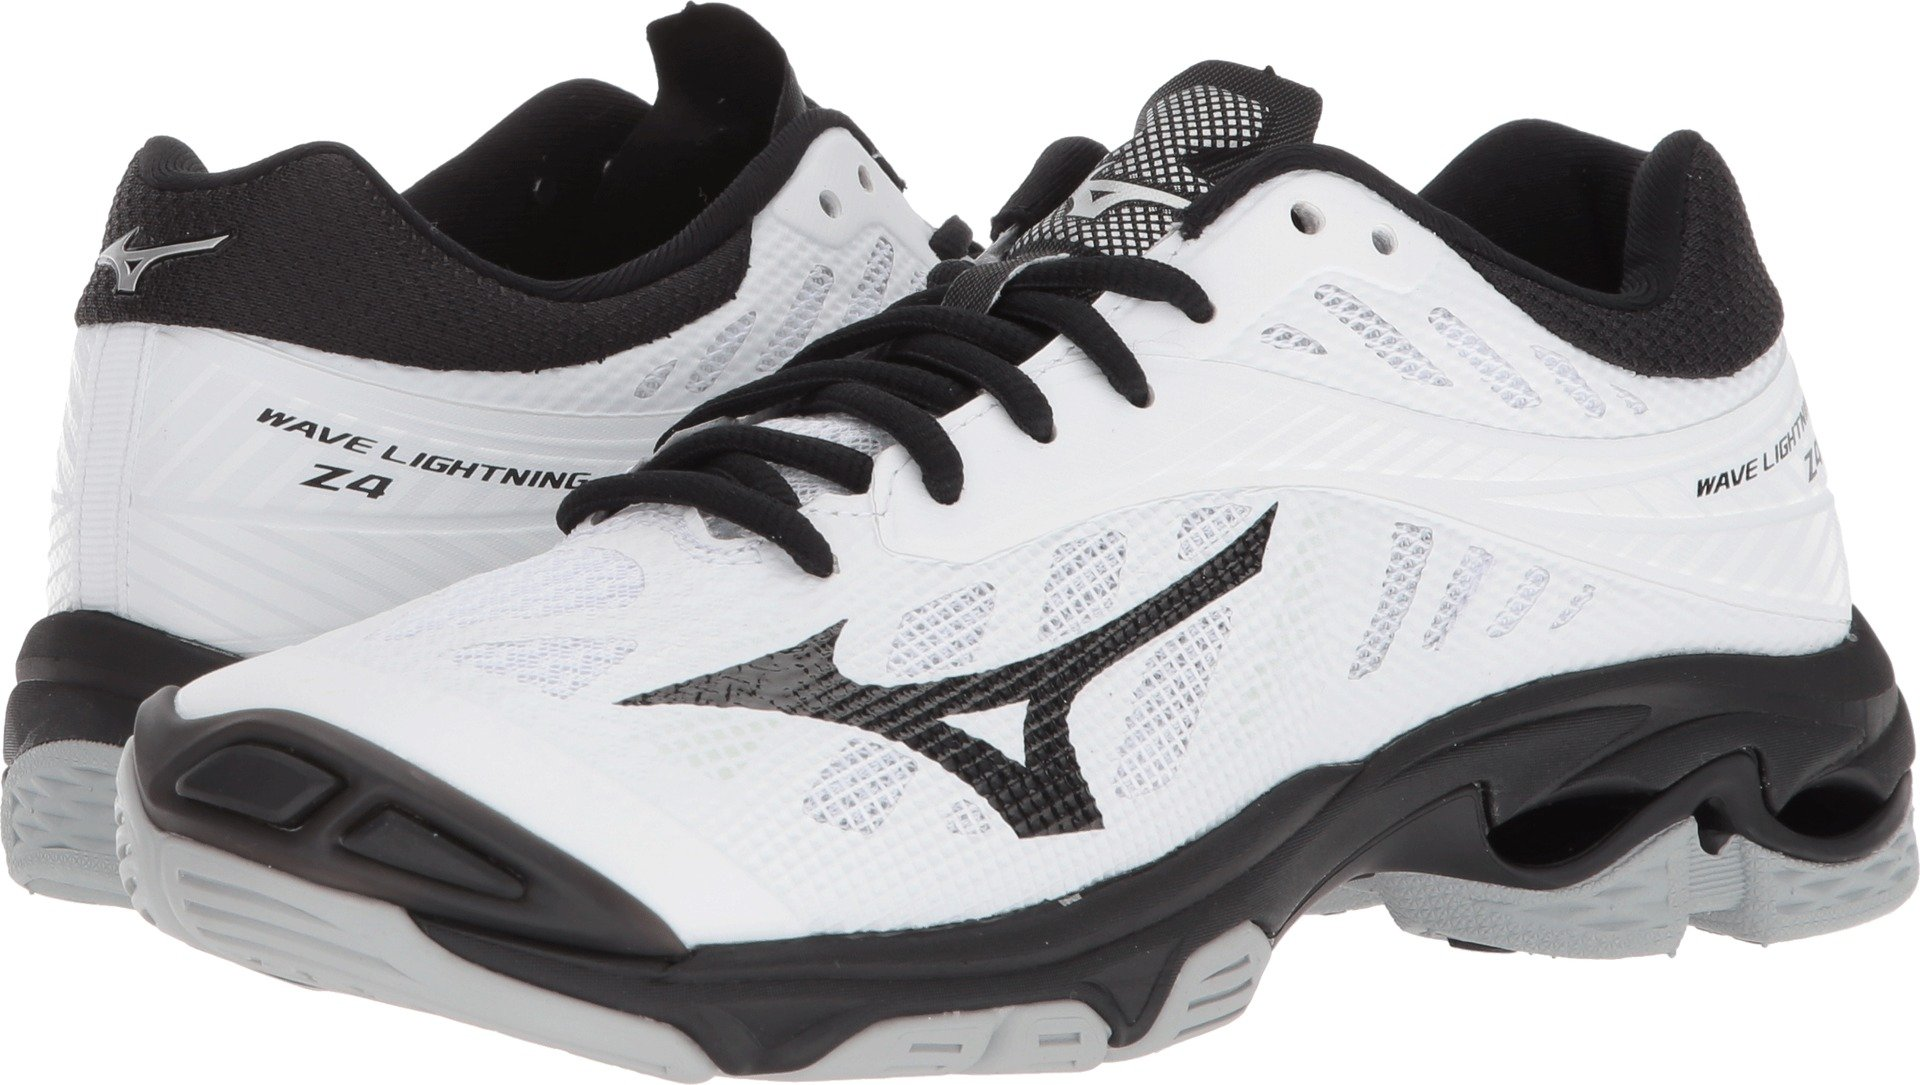 Mizuno Wave Lightning Z4 Volleyball Shoes Footwear Womens, Multi, One Size by Mizuno